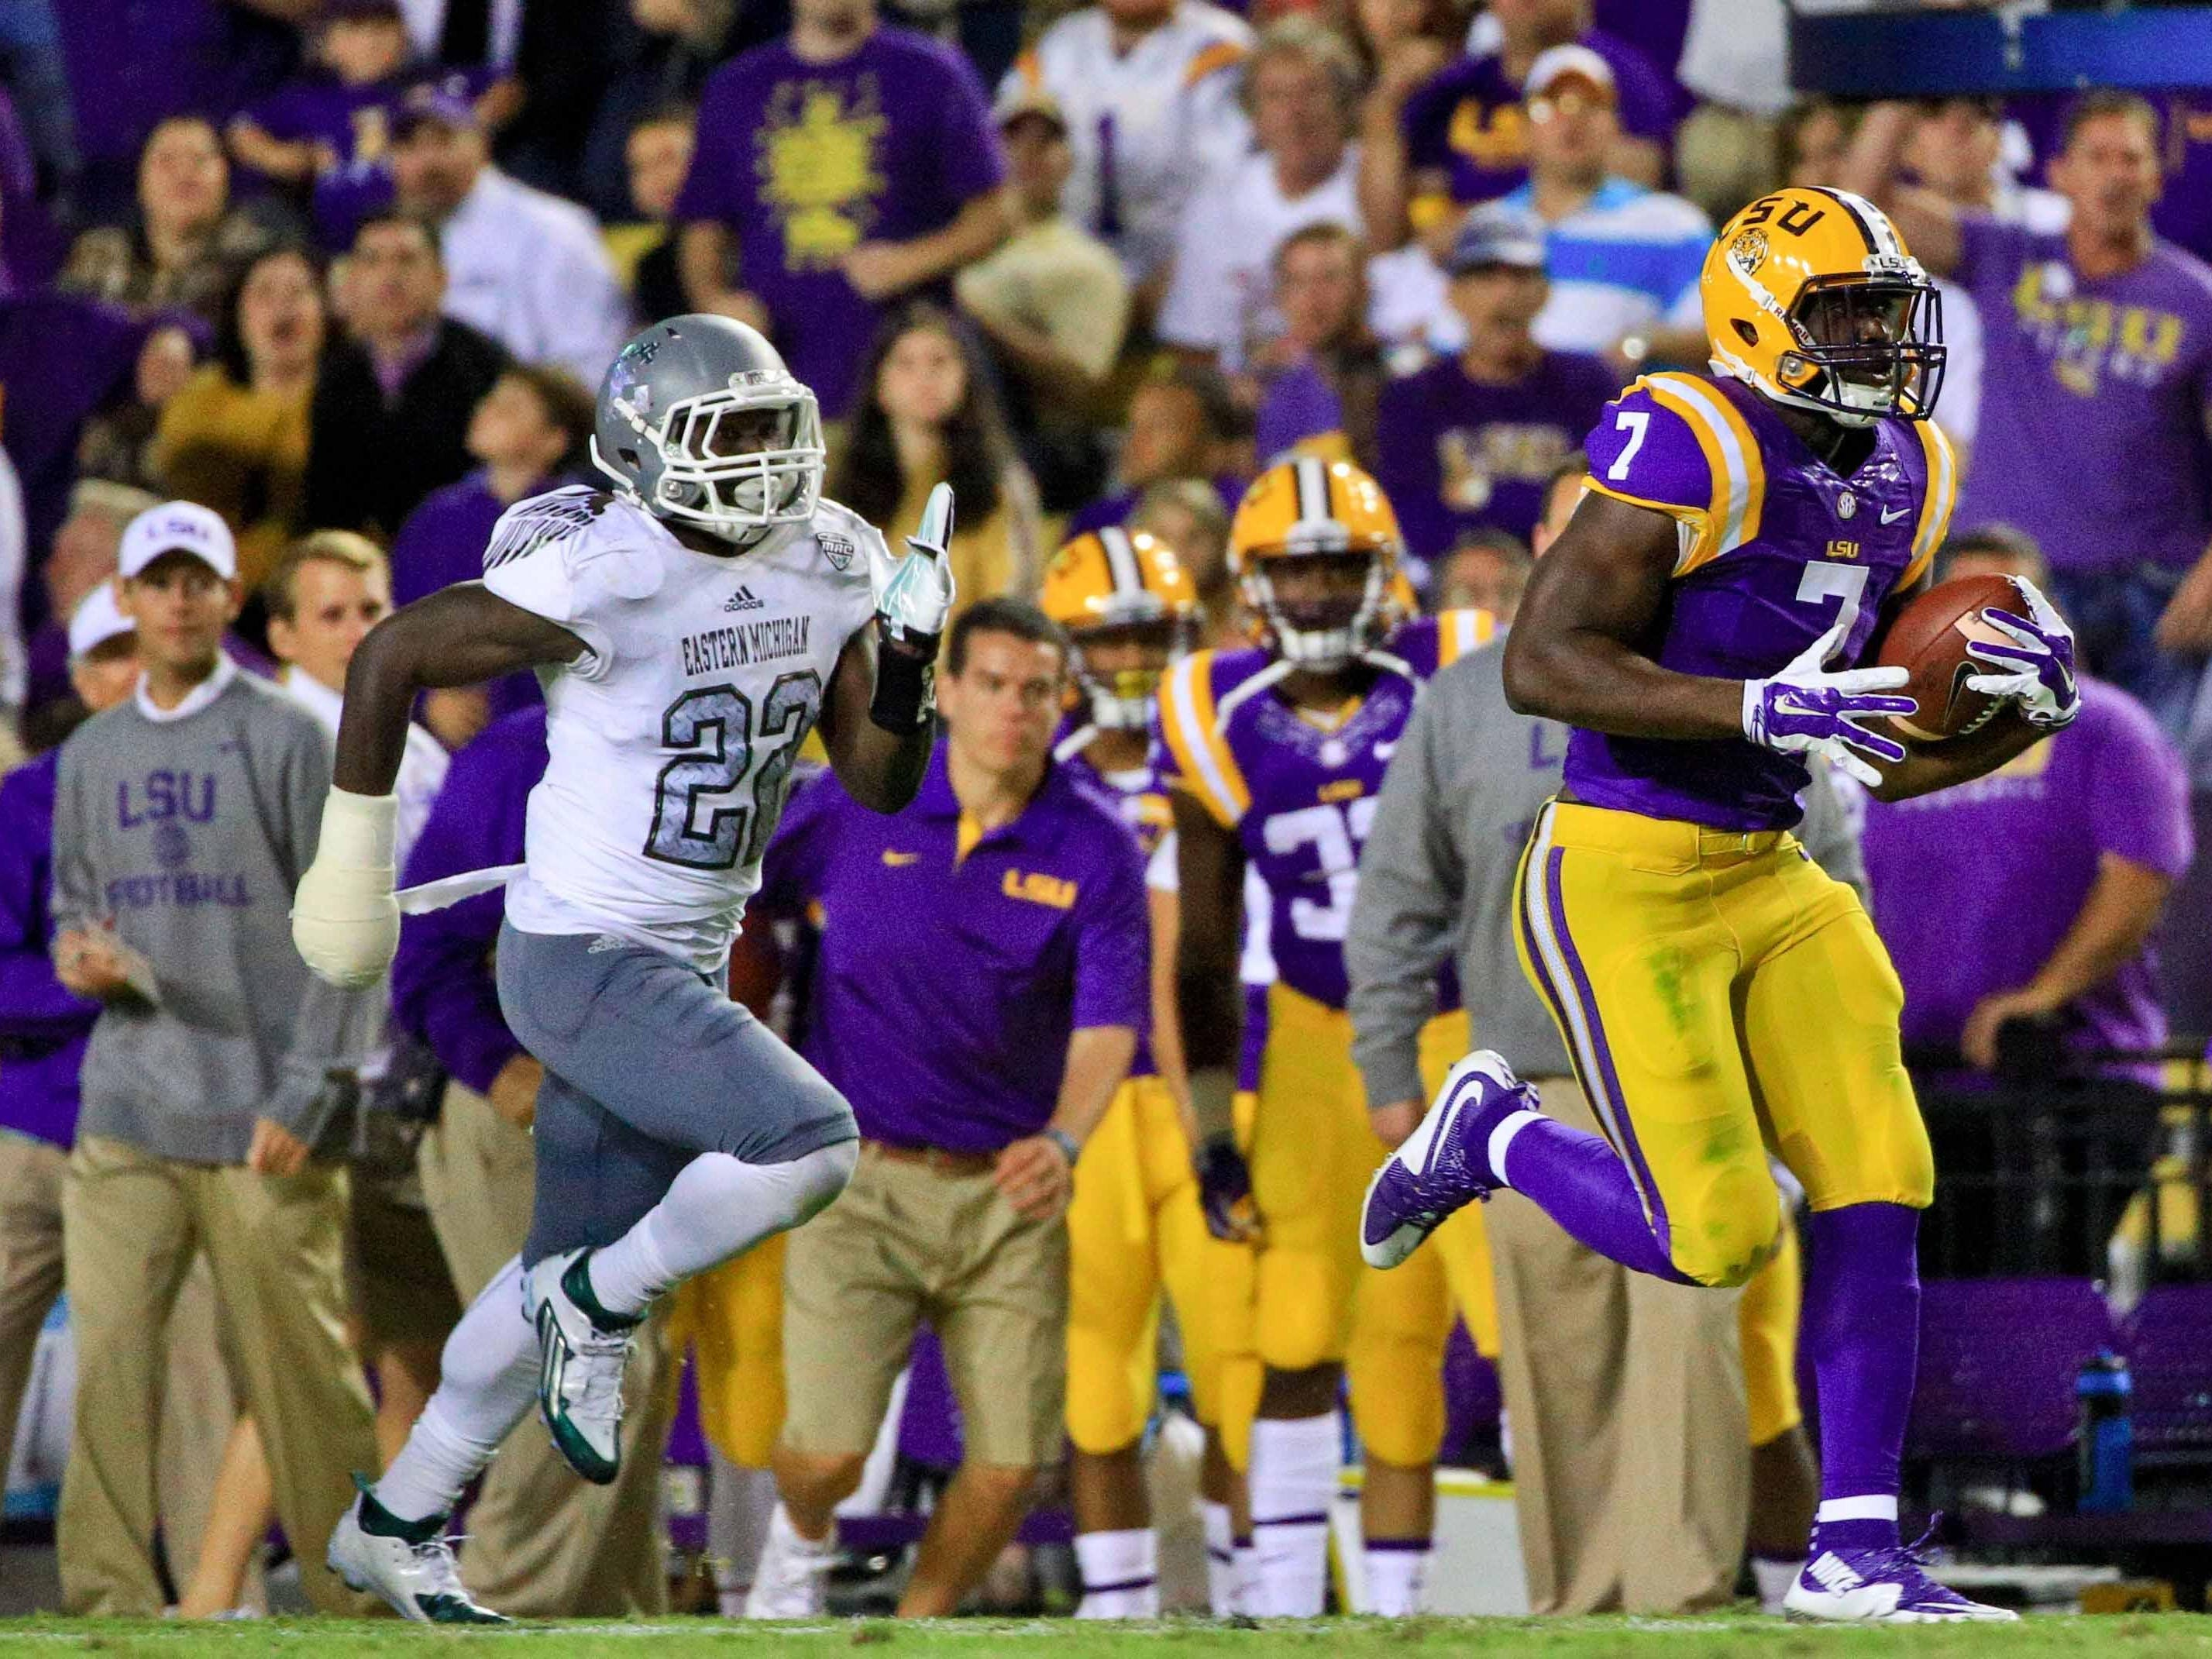 LSU Tigers running back Leonard Fournette (7) breaks away from Eastern Michigan Eagles defensive back Anthony Brown (22) running for a 75-yard touchdown during the third quarter of a game at Tiger Stadium.